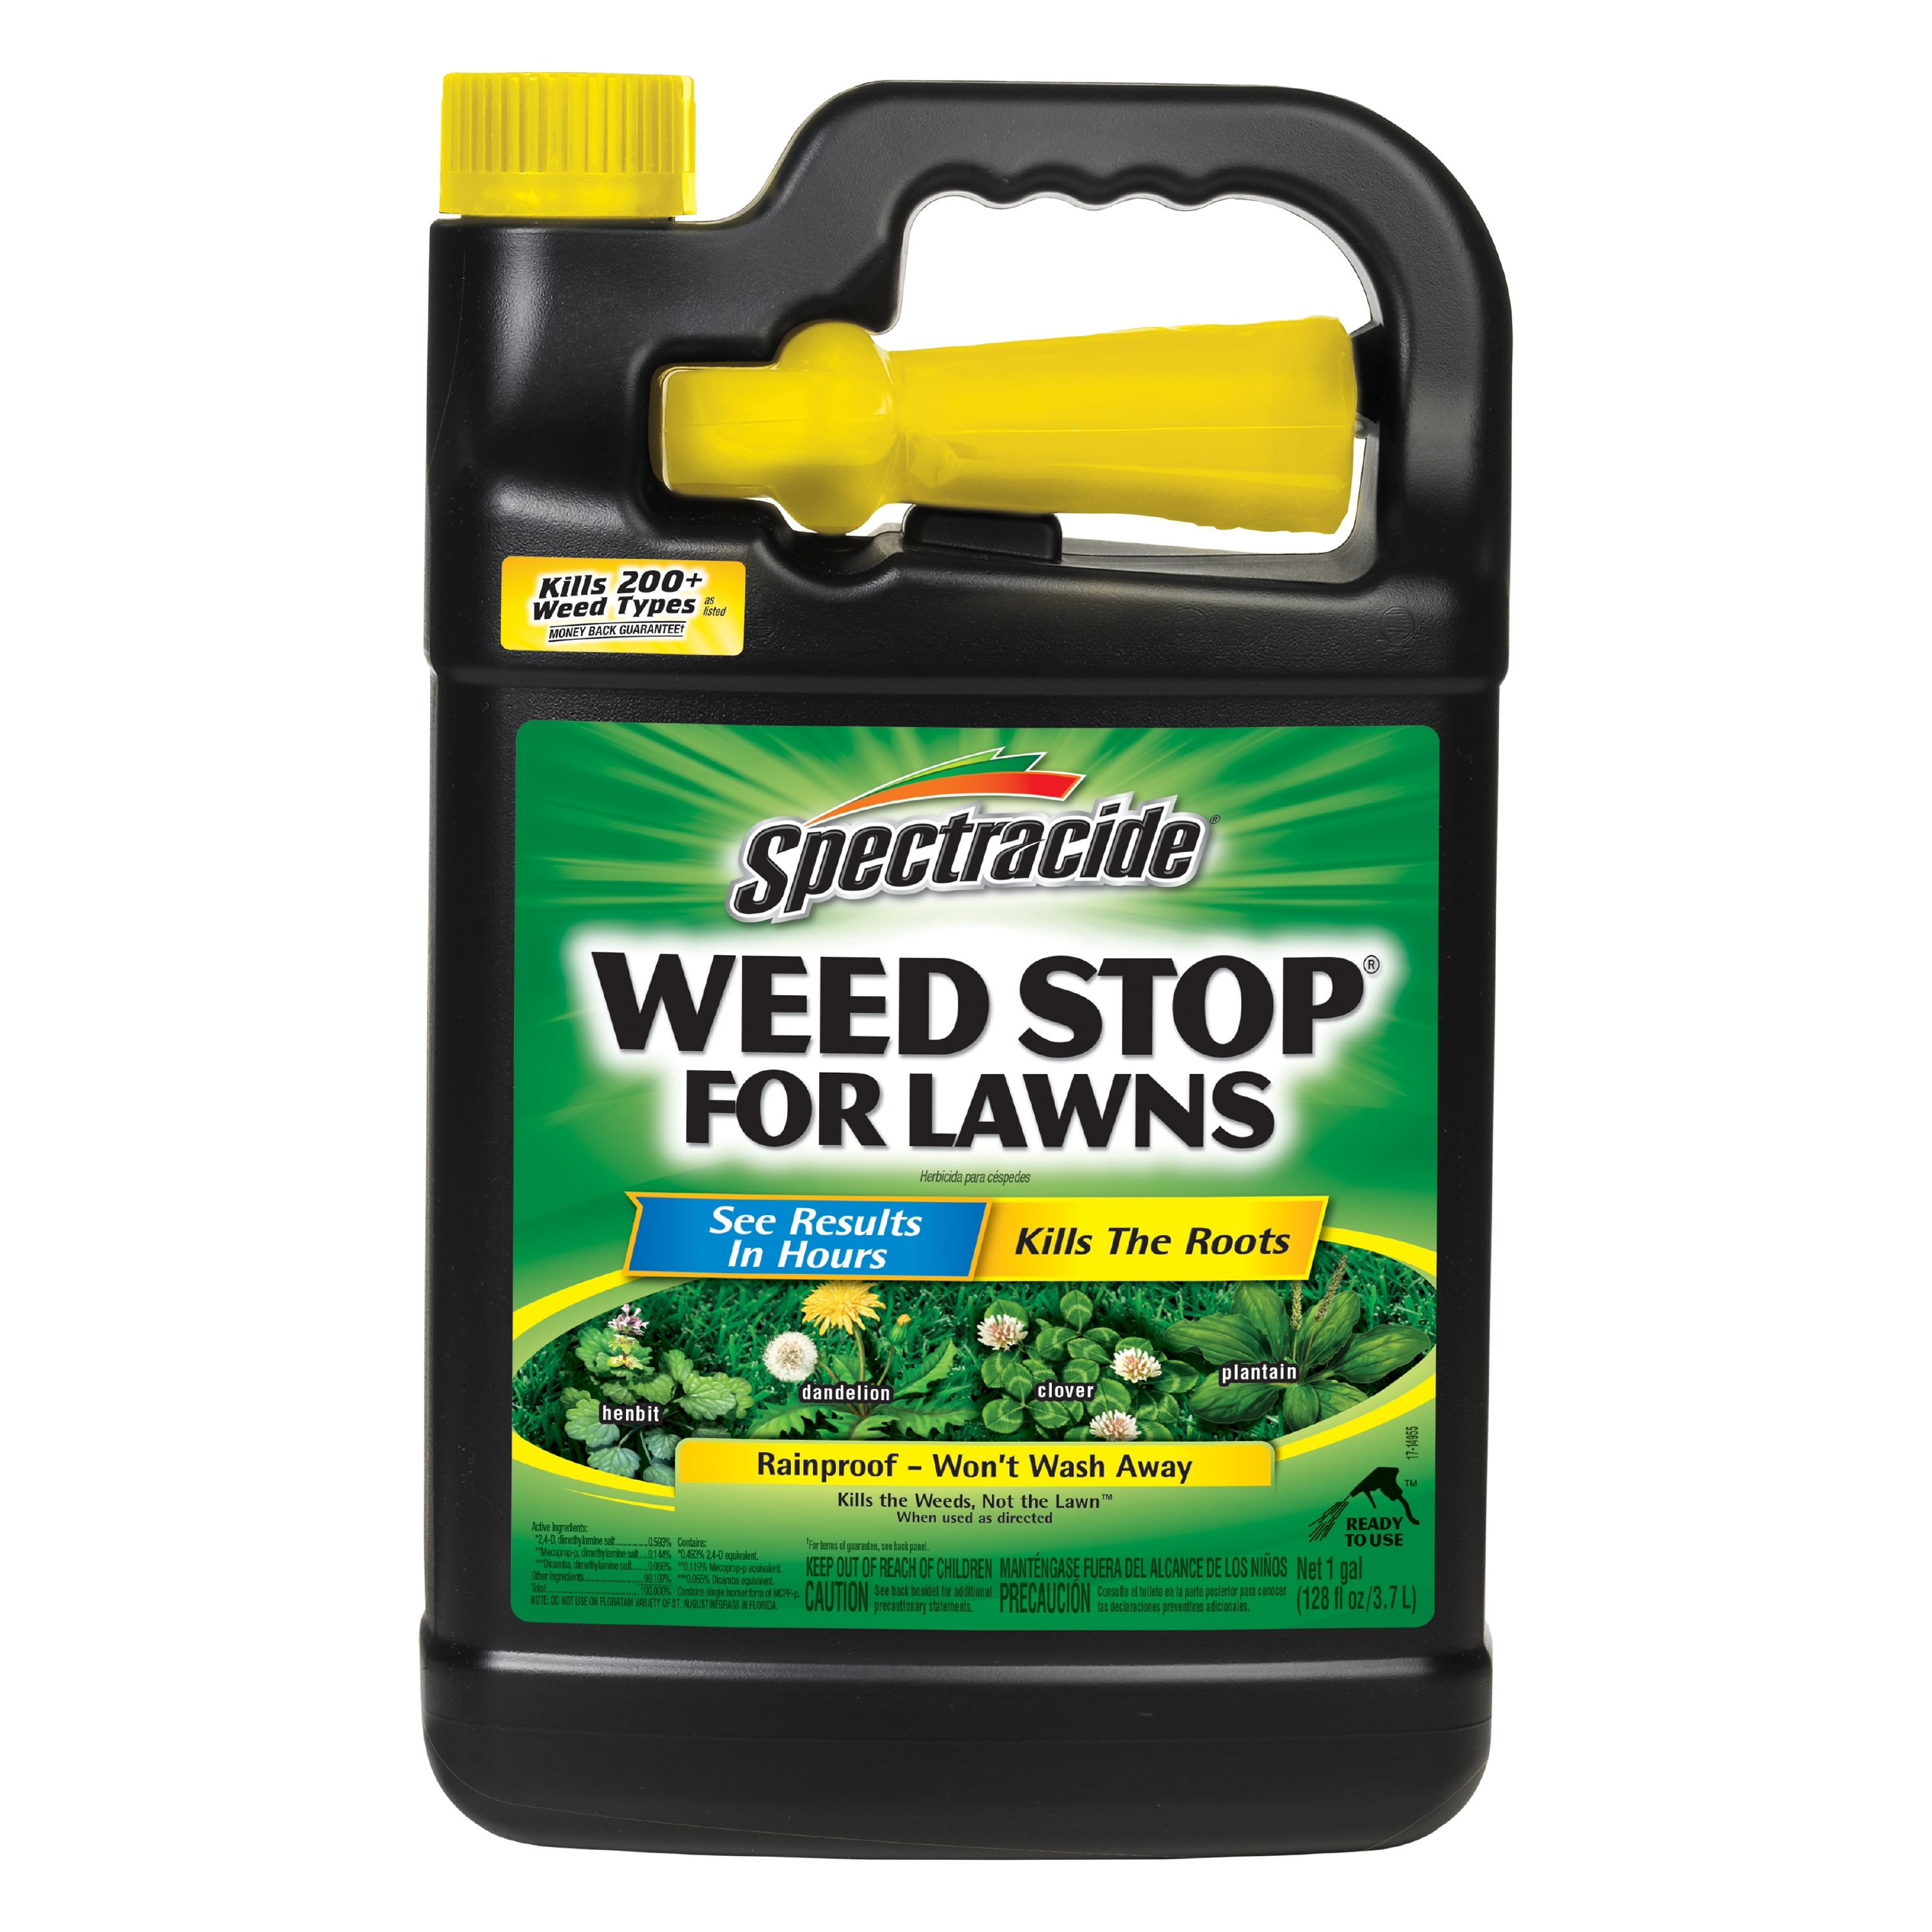 Spectracide Weed Stop For Lawns, Ready-to-Use, 1-gallon